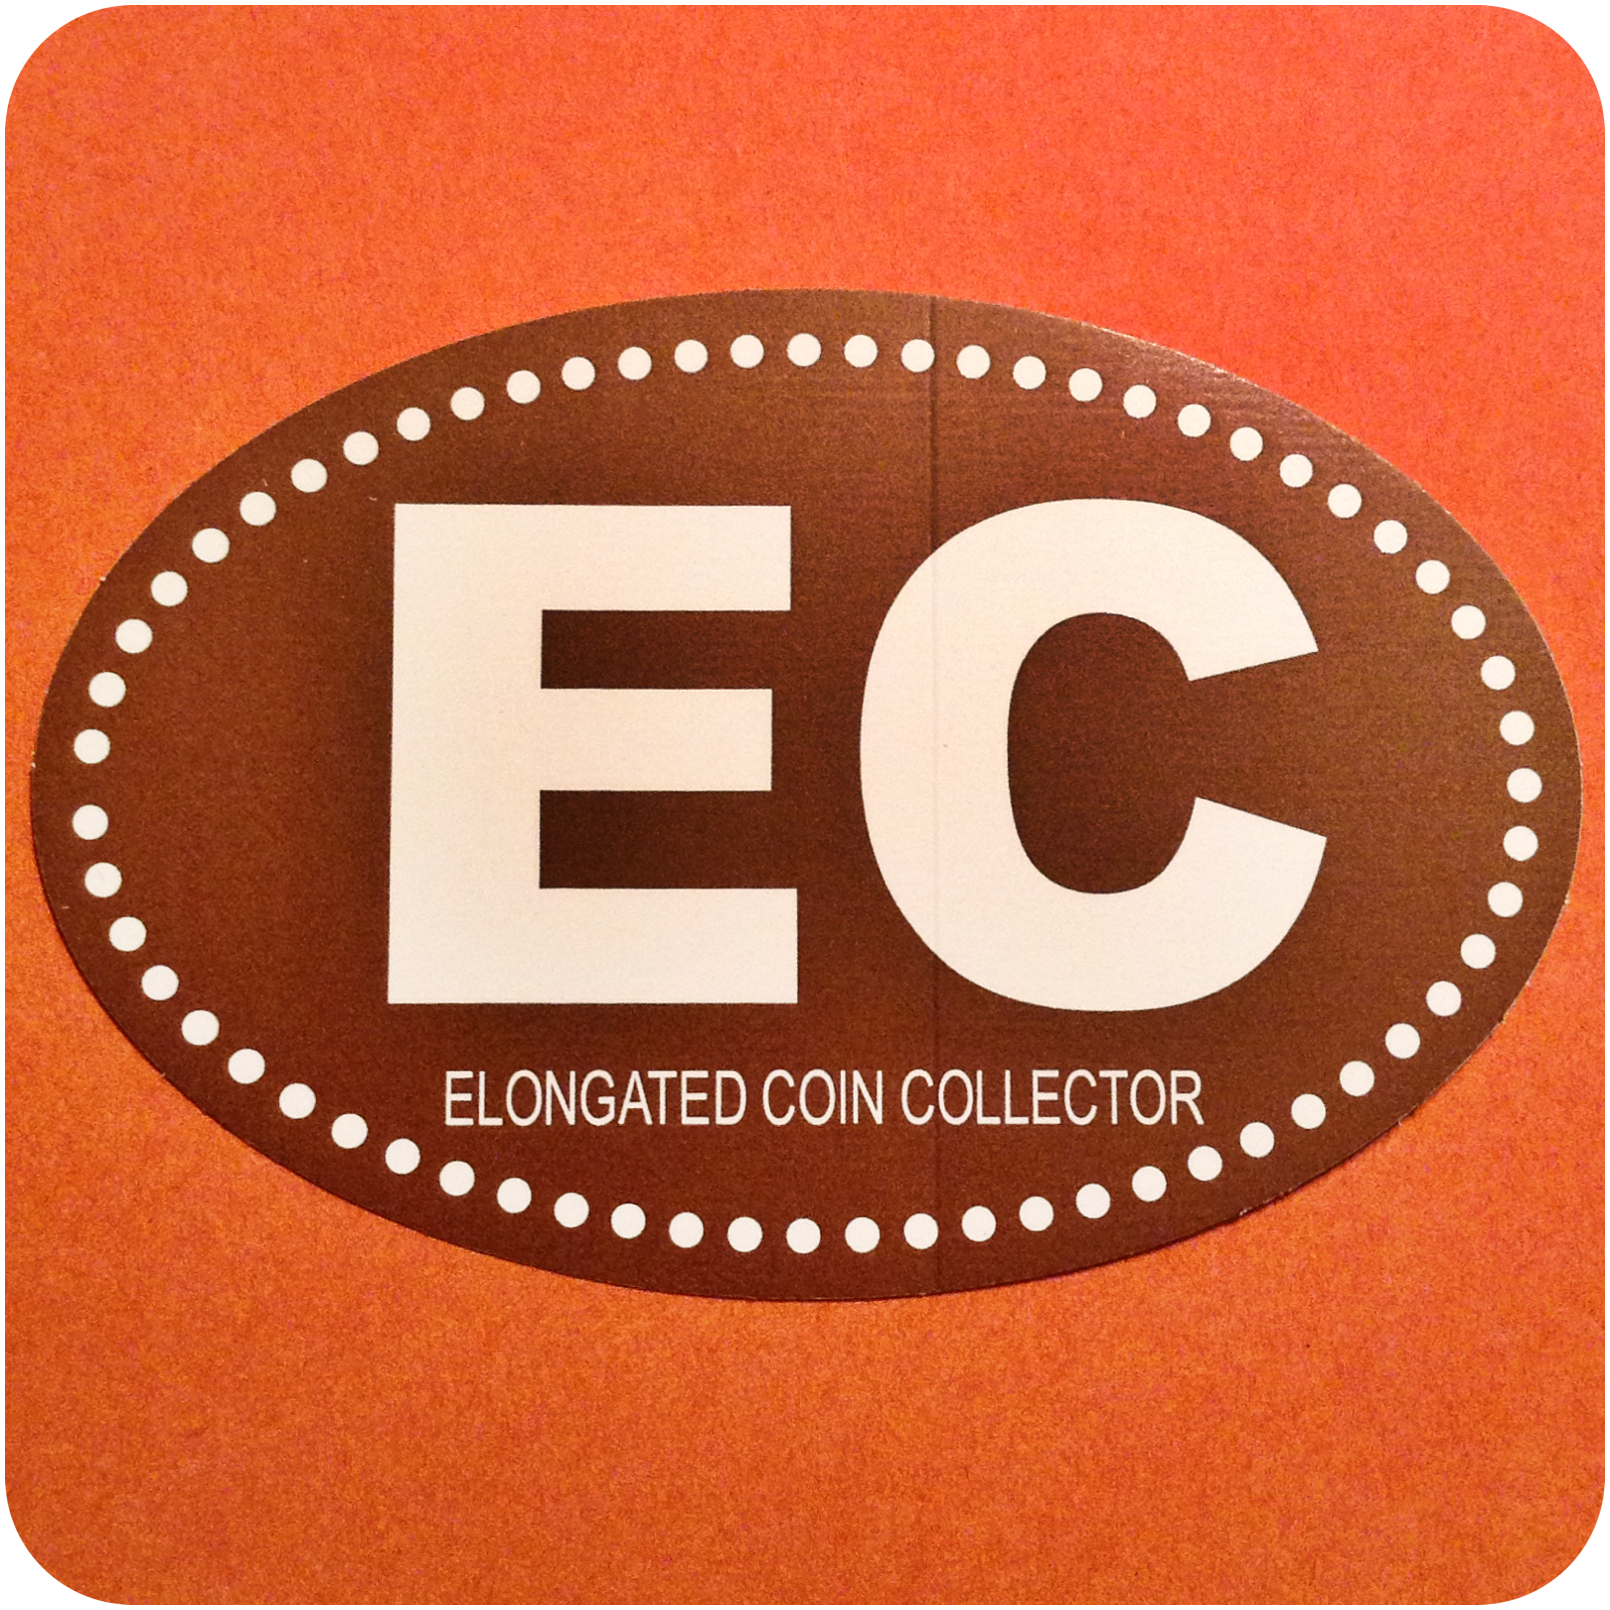 EC Elongated Coin Collector